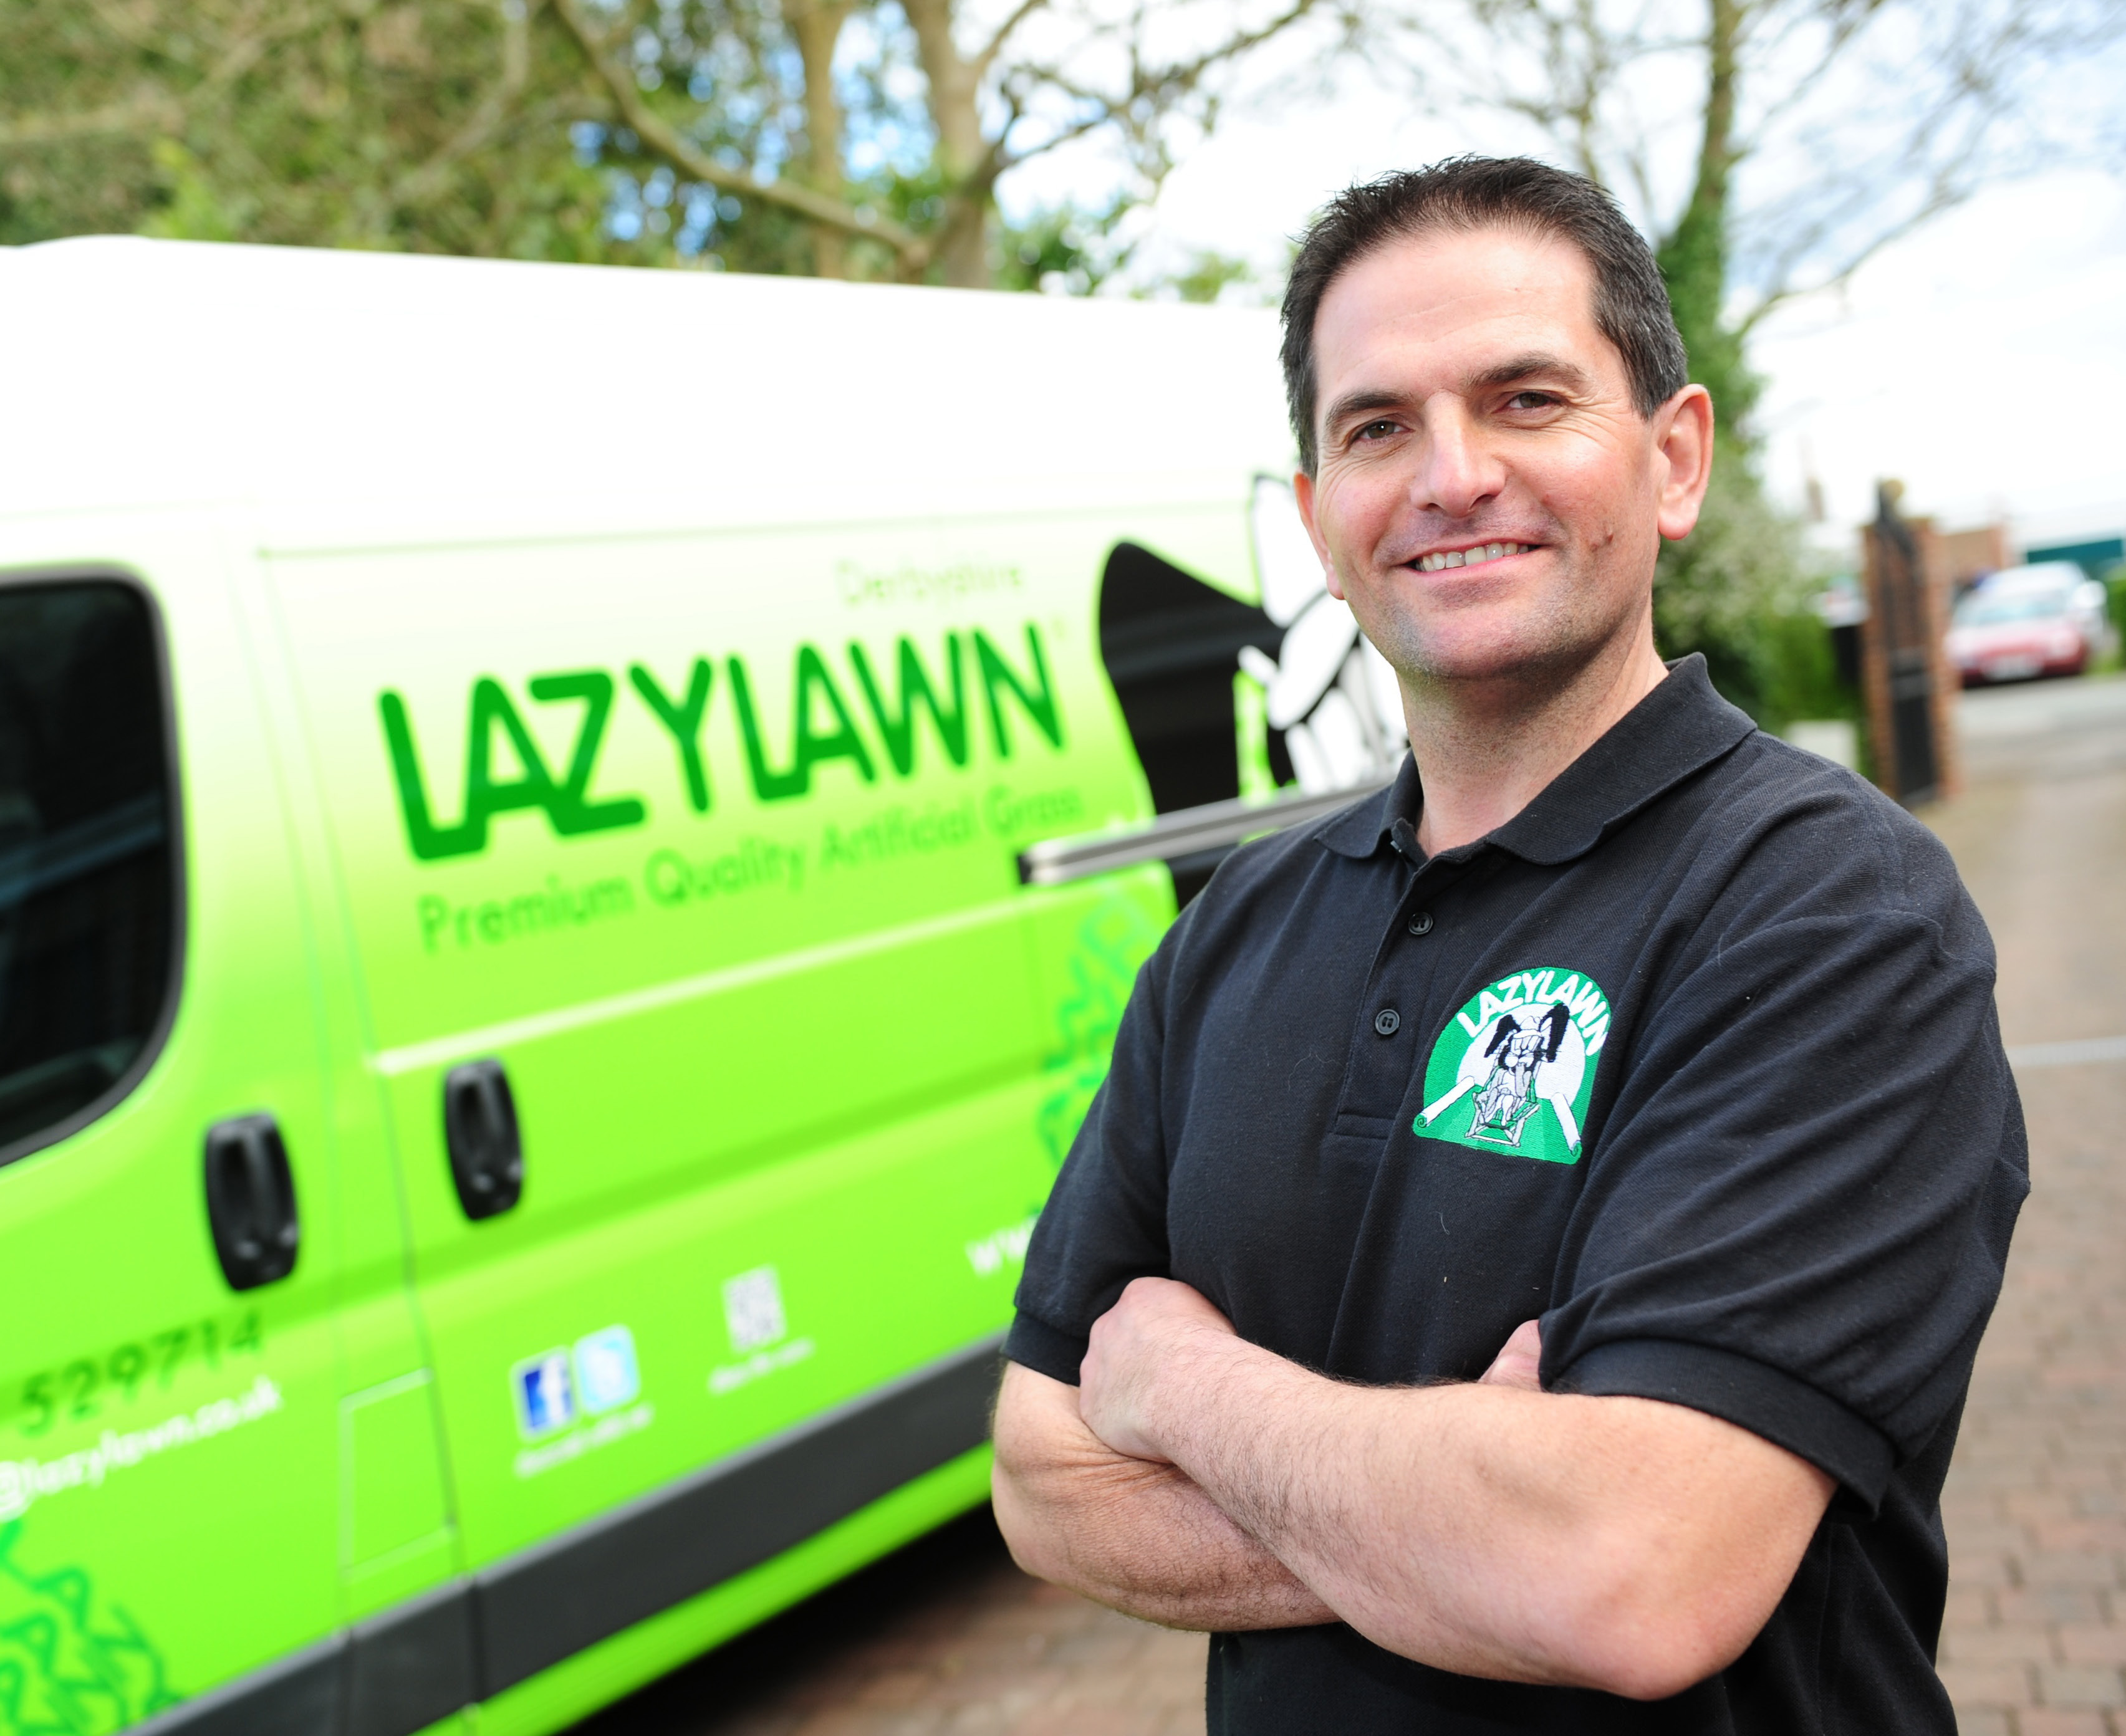 LazyLawn® Head Office